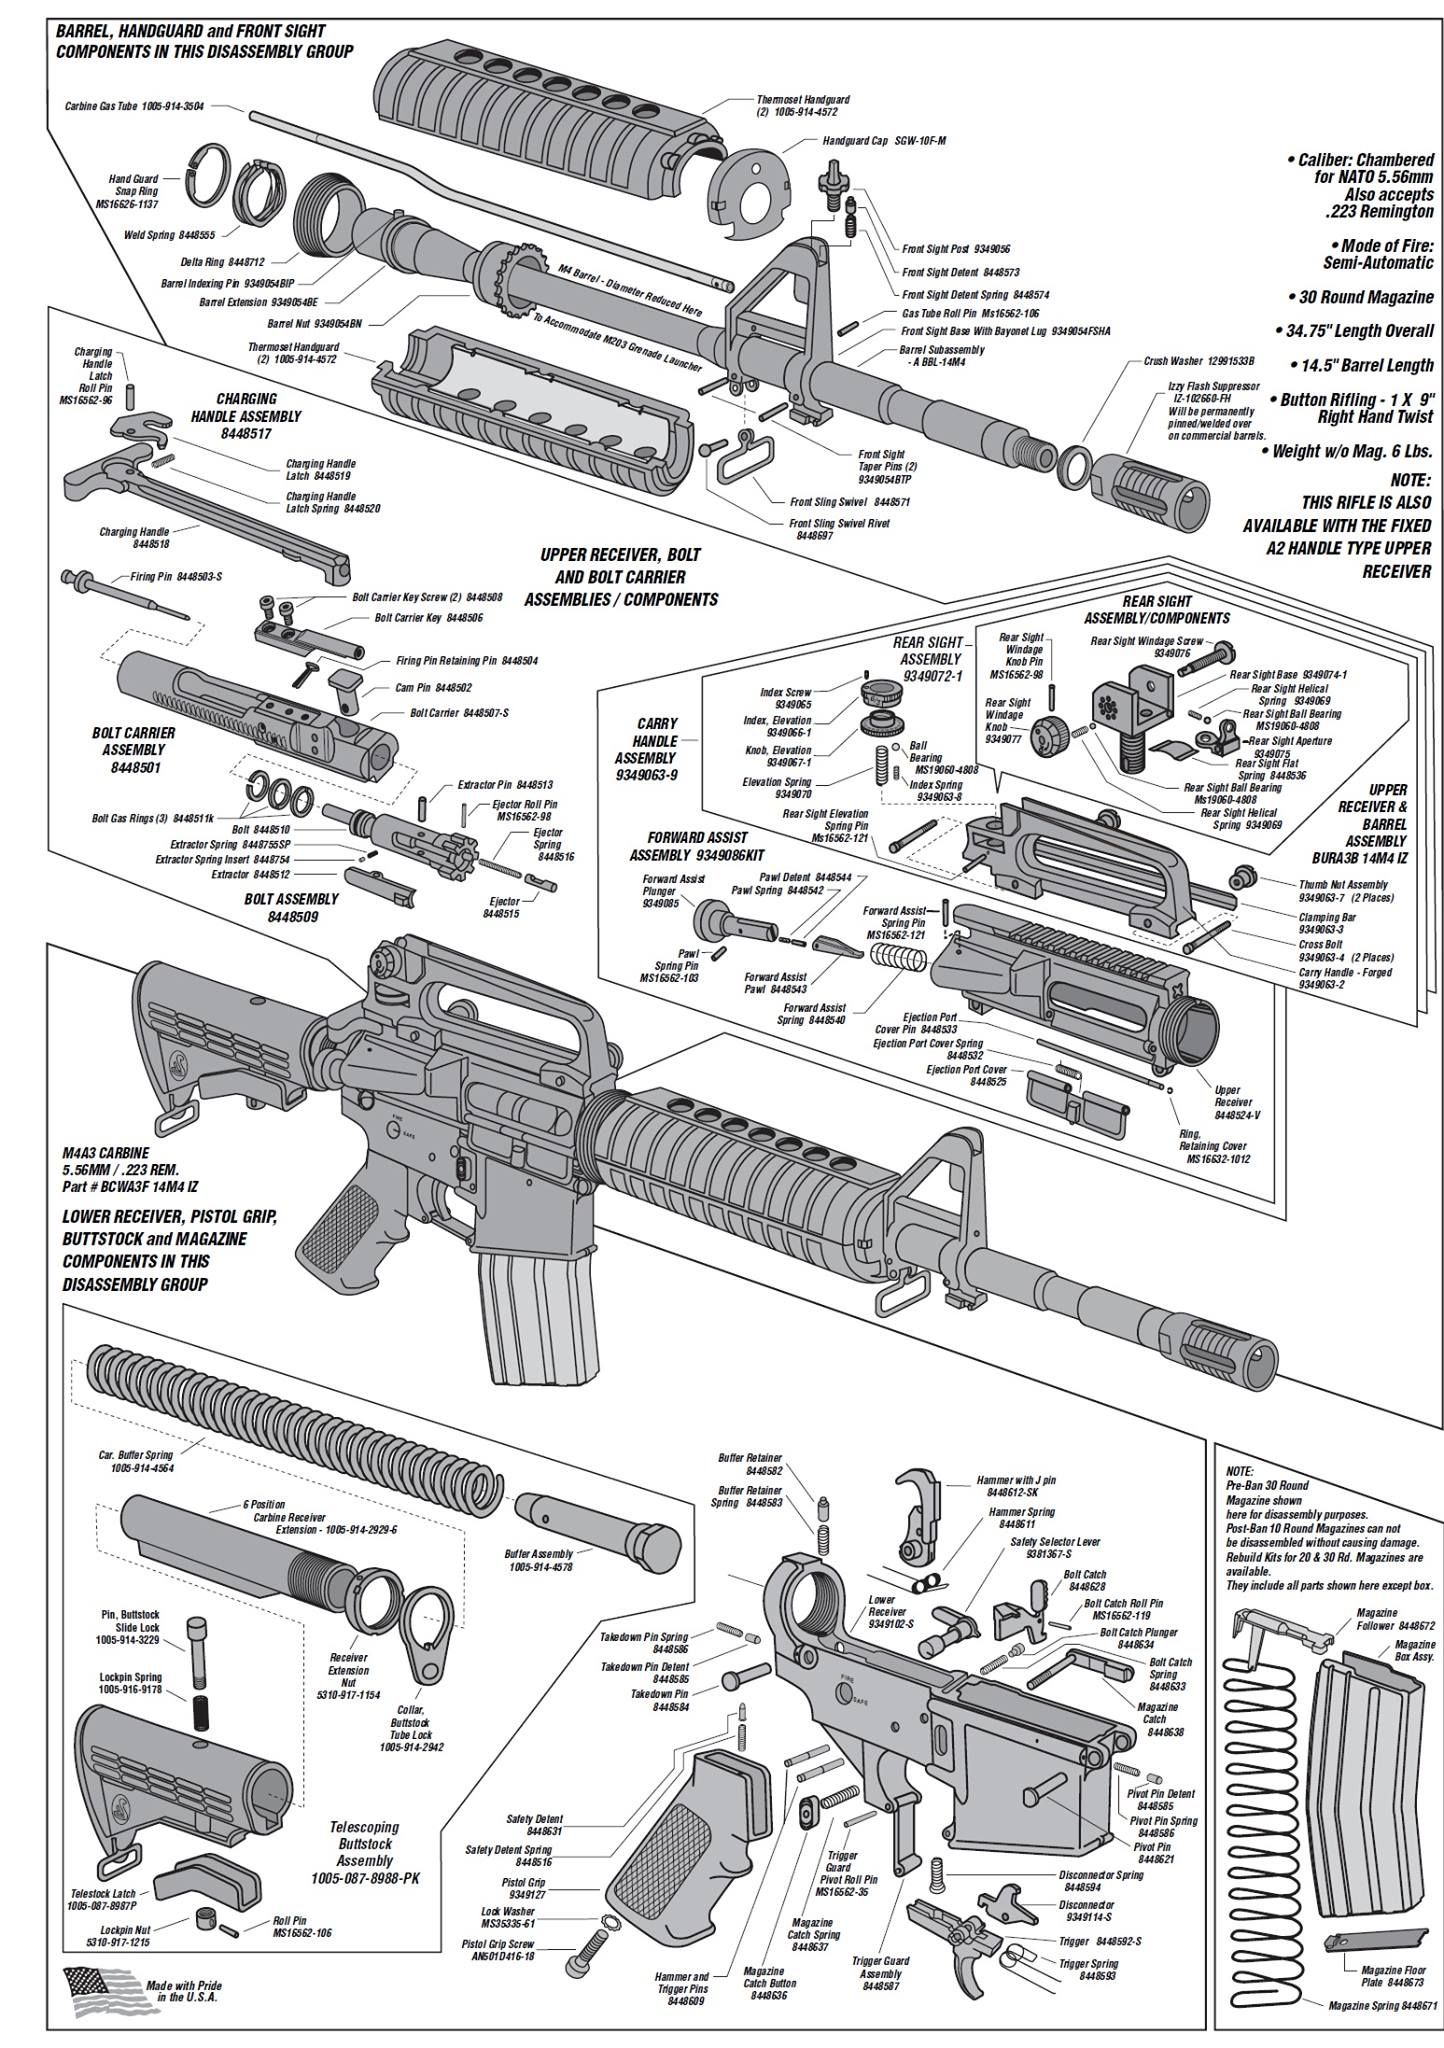 smith and wesson ar 15 parts list